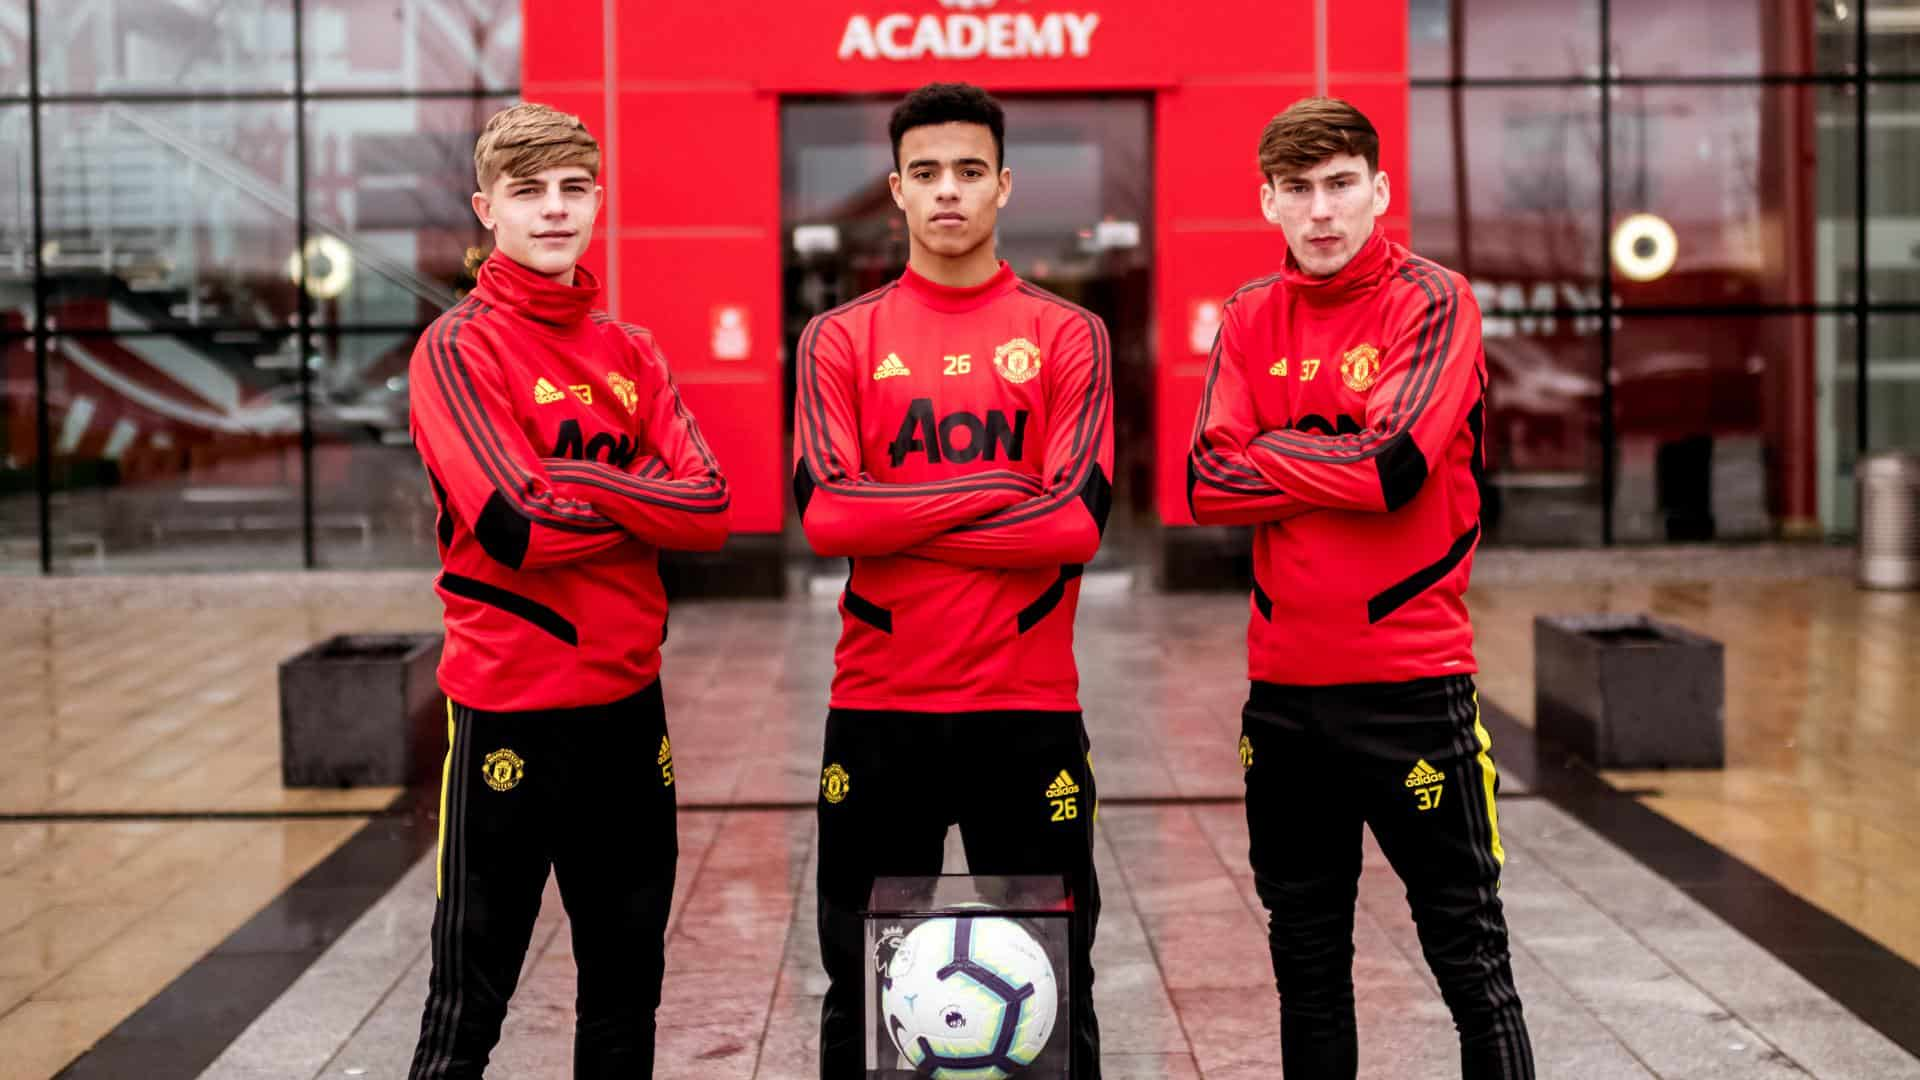 manchester united fc s academy prospects 2020 man utd core academy prospects 2020 man utd